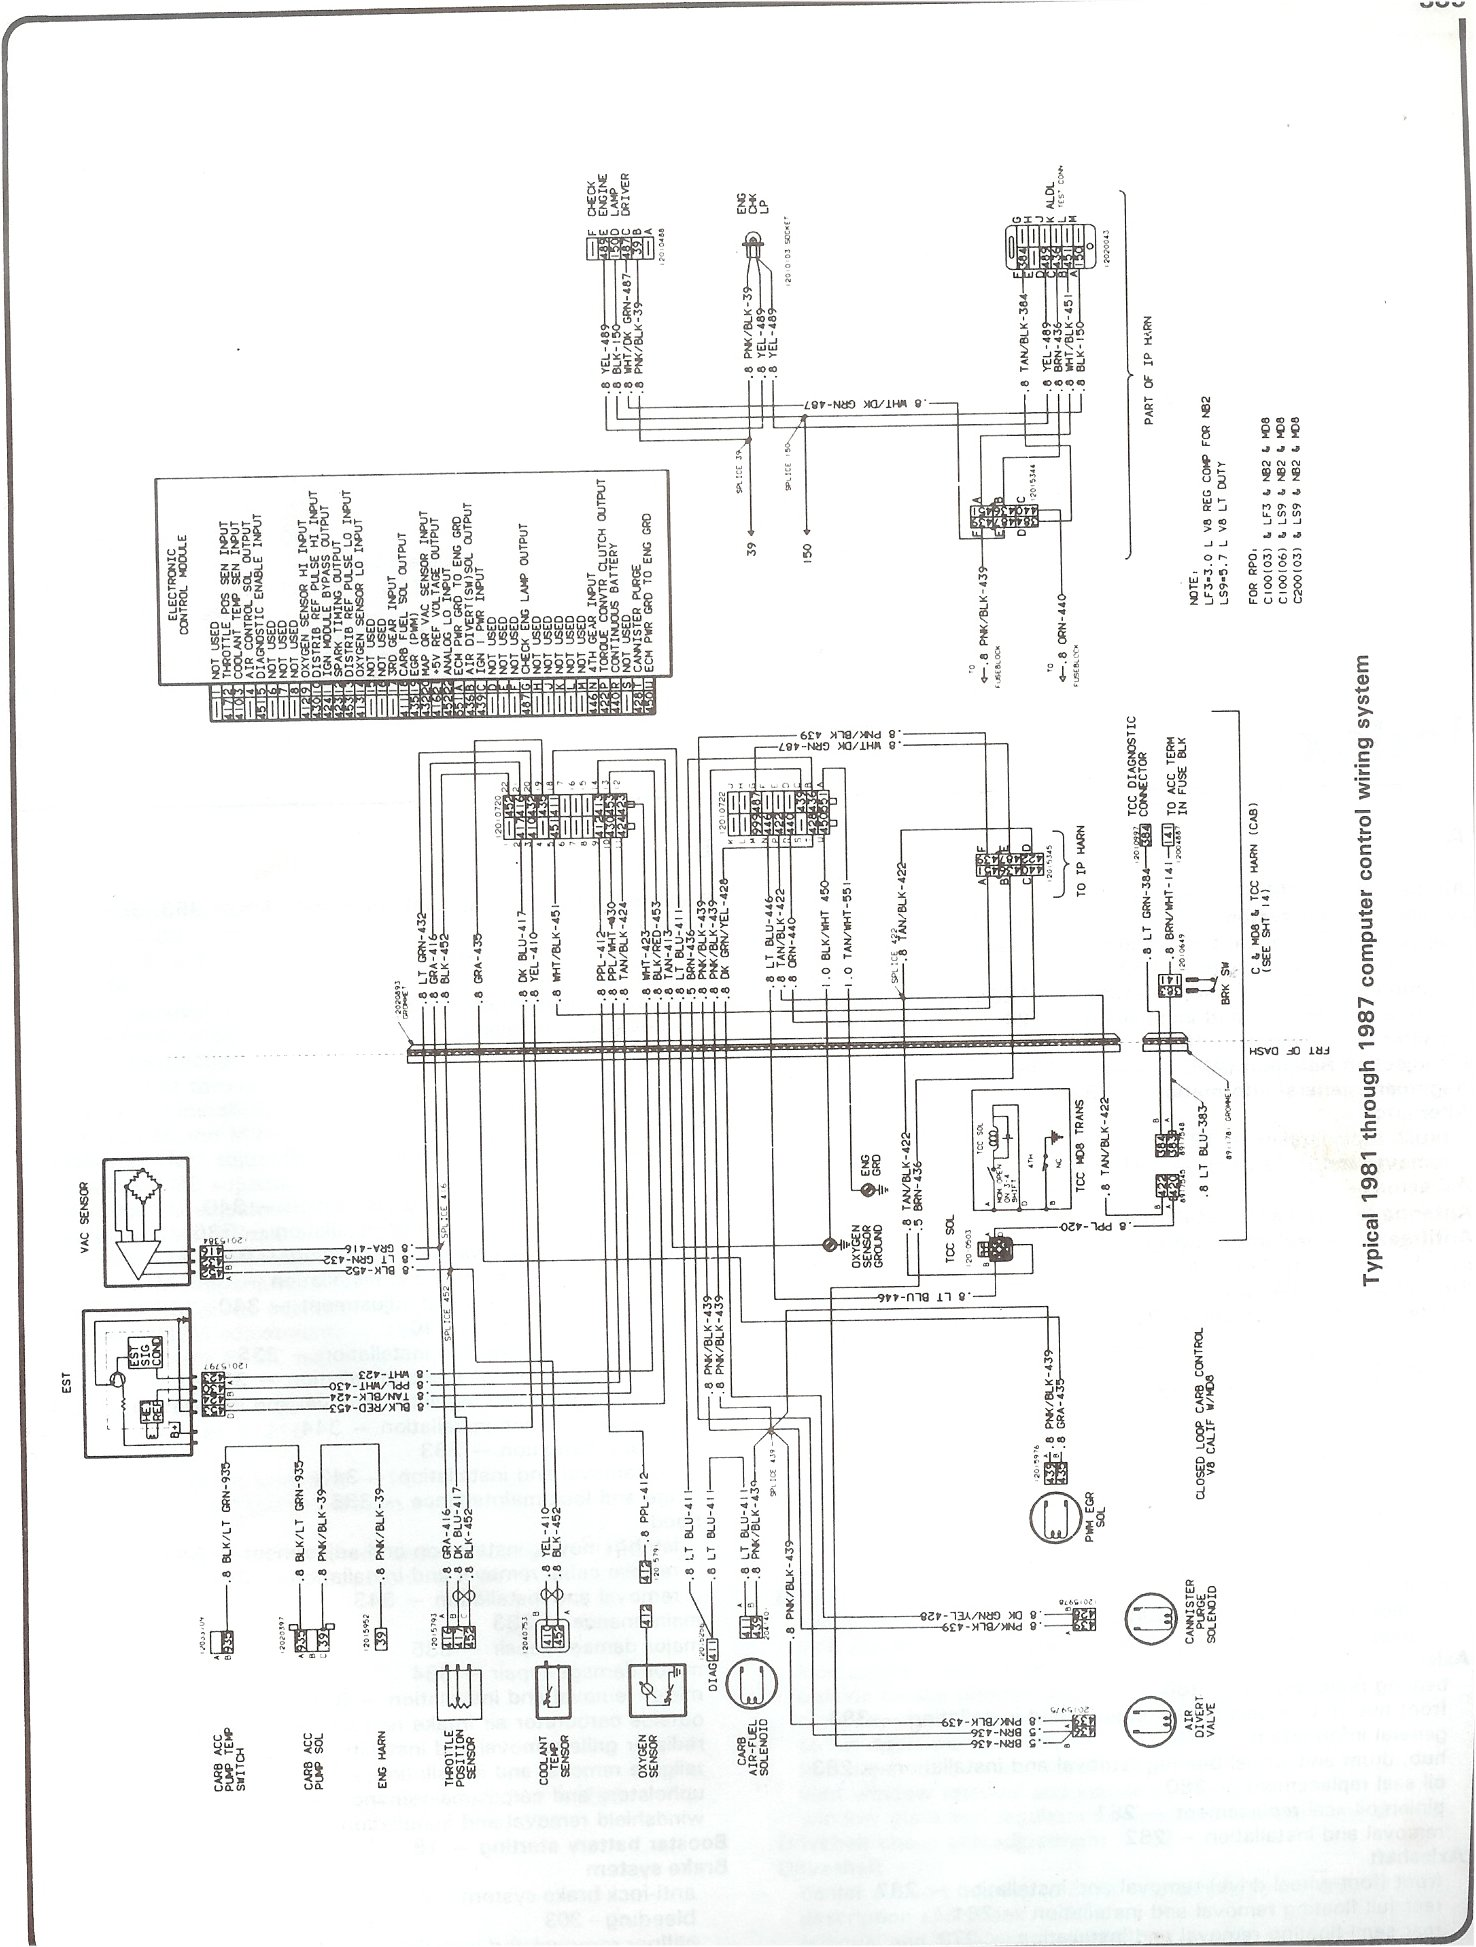 1978 Chevy Truck Ignition Switch Wiring Diagram Schematics Car Complete 73 87 Diagrams Rh Forum 87chevytrucks Com 1985